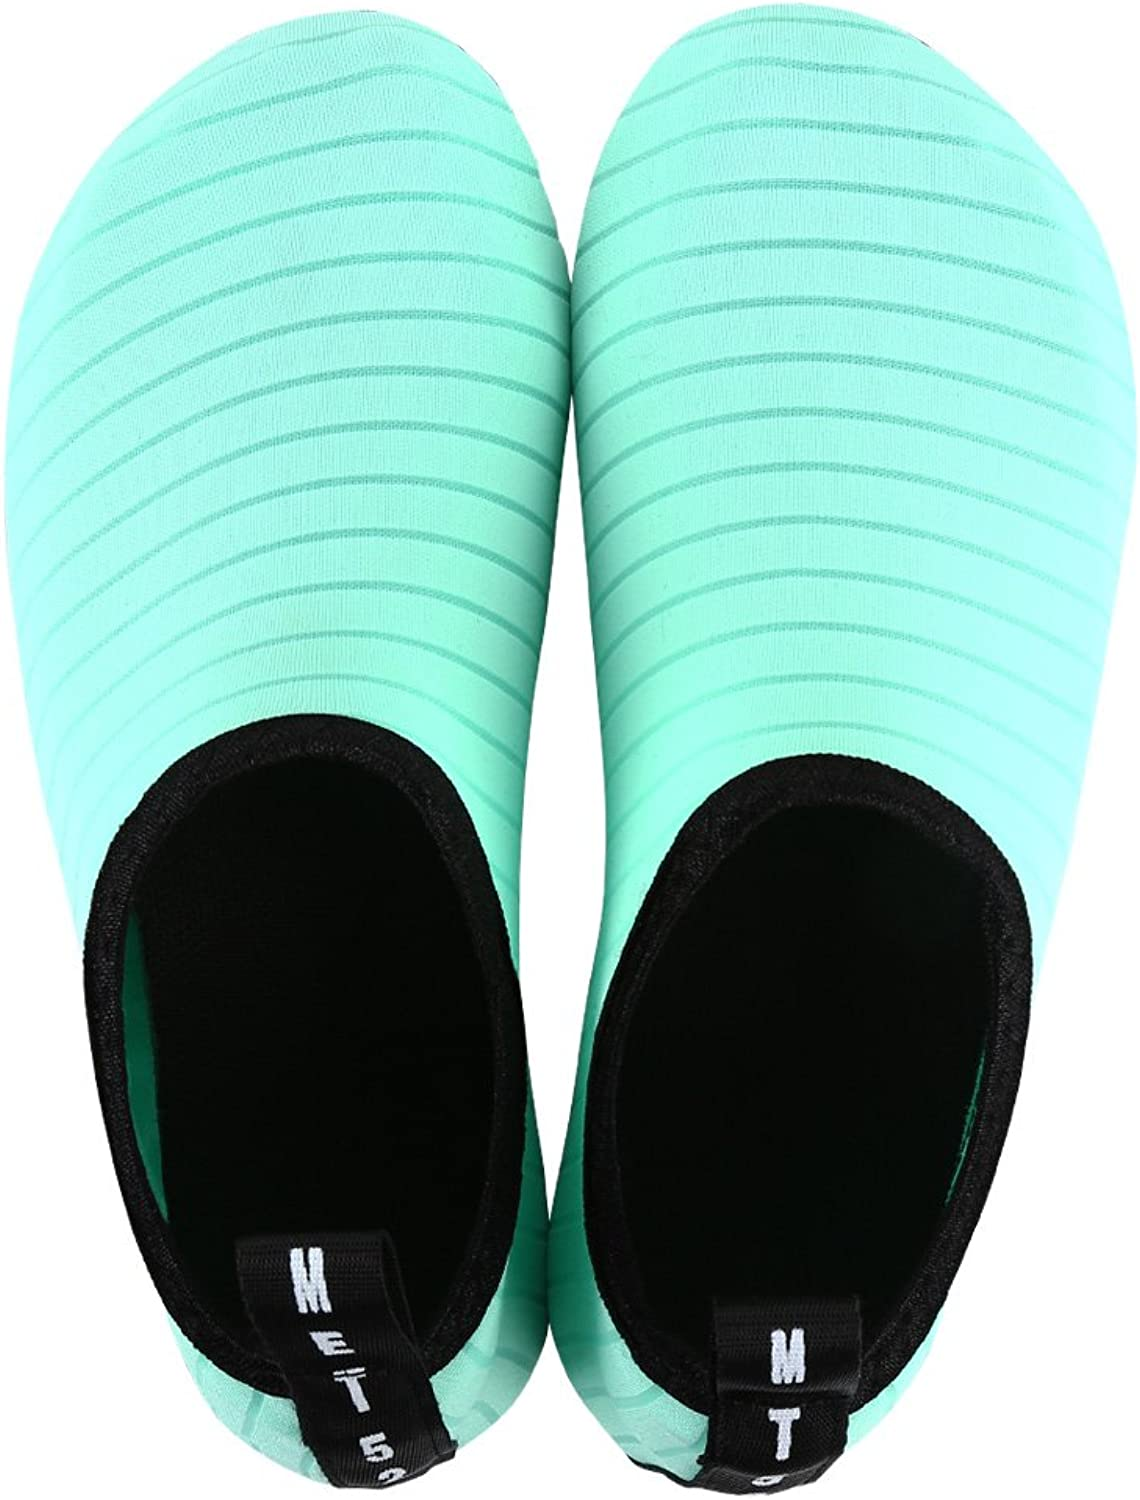 MANYITE Lightweight Water Sports shoes for Womens Mens Barefoot shoes Quick-Dry Aqua Socks for Beach Swim Surf